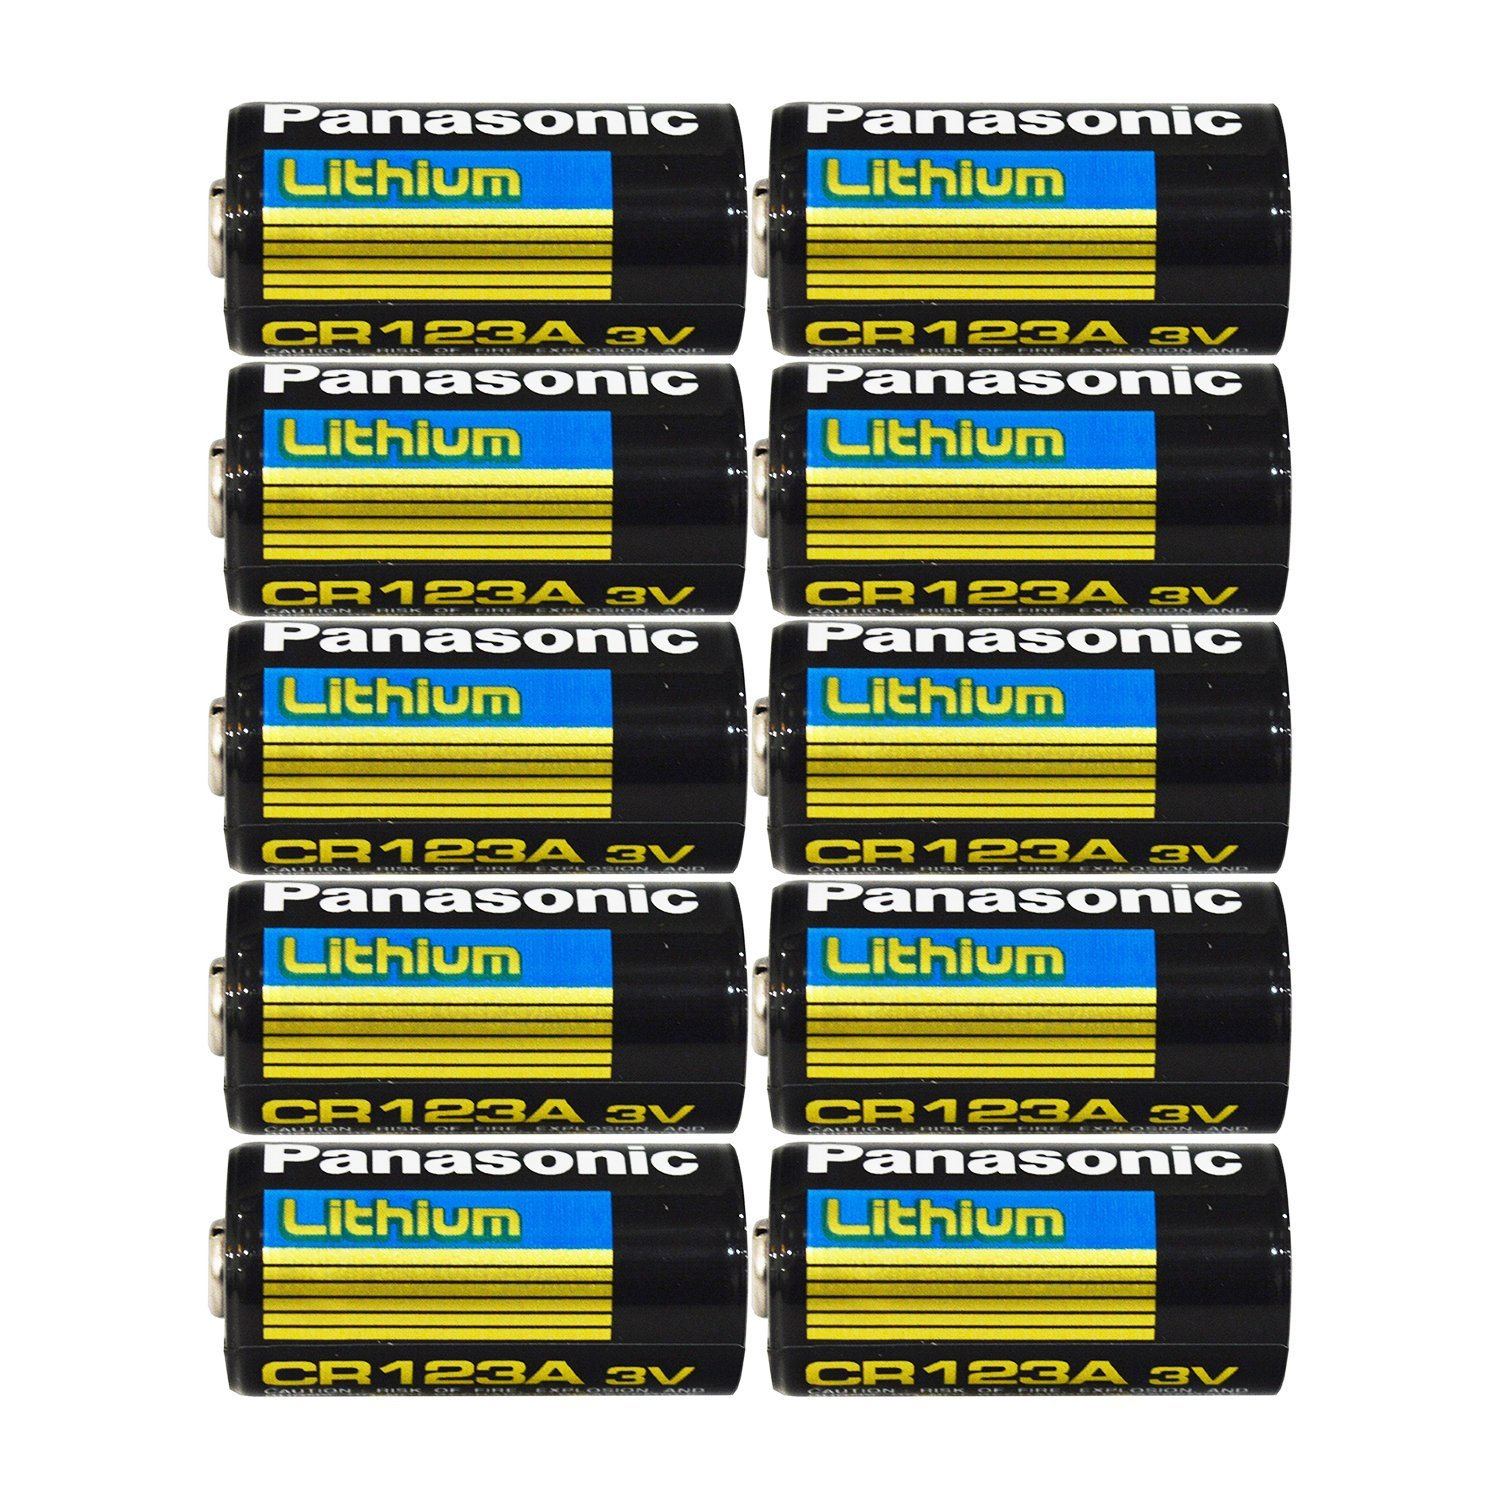 Panasonic Lithium CR123A 3V Photo Lithium Batteries (Pack of 10)